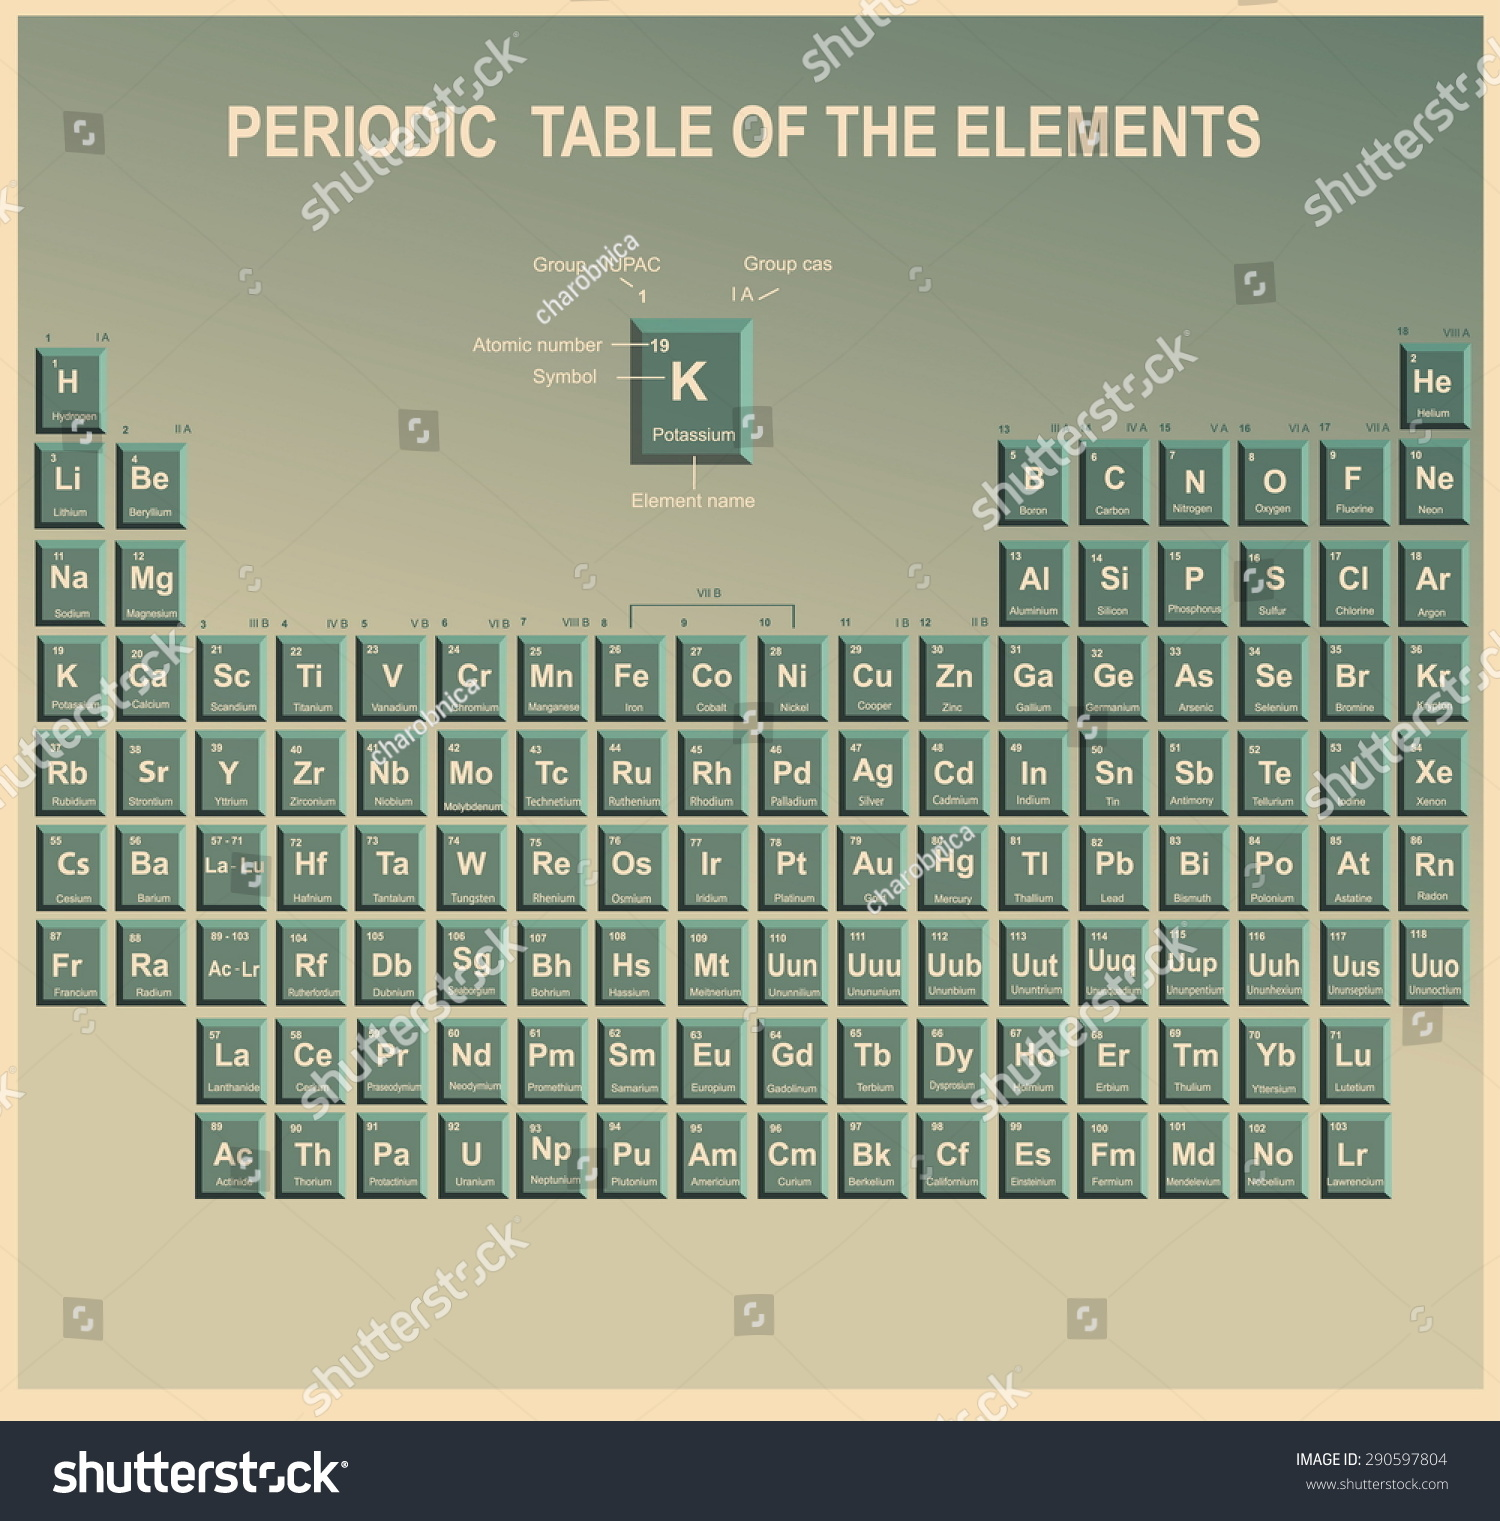 Periodic table elements symbol atomic number stock vector 290597804 periodic table of the elements with symbol and atomic number urtaz Choice Image